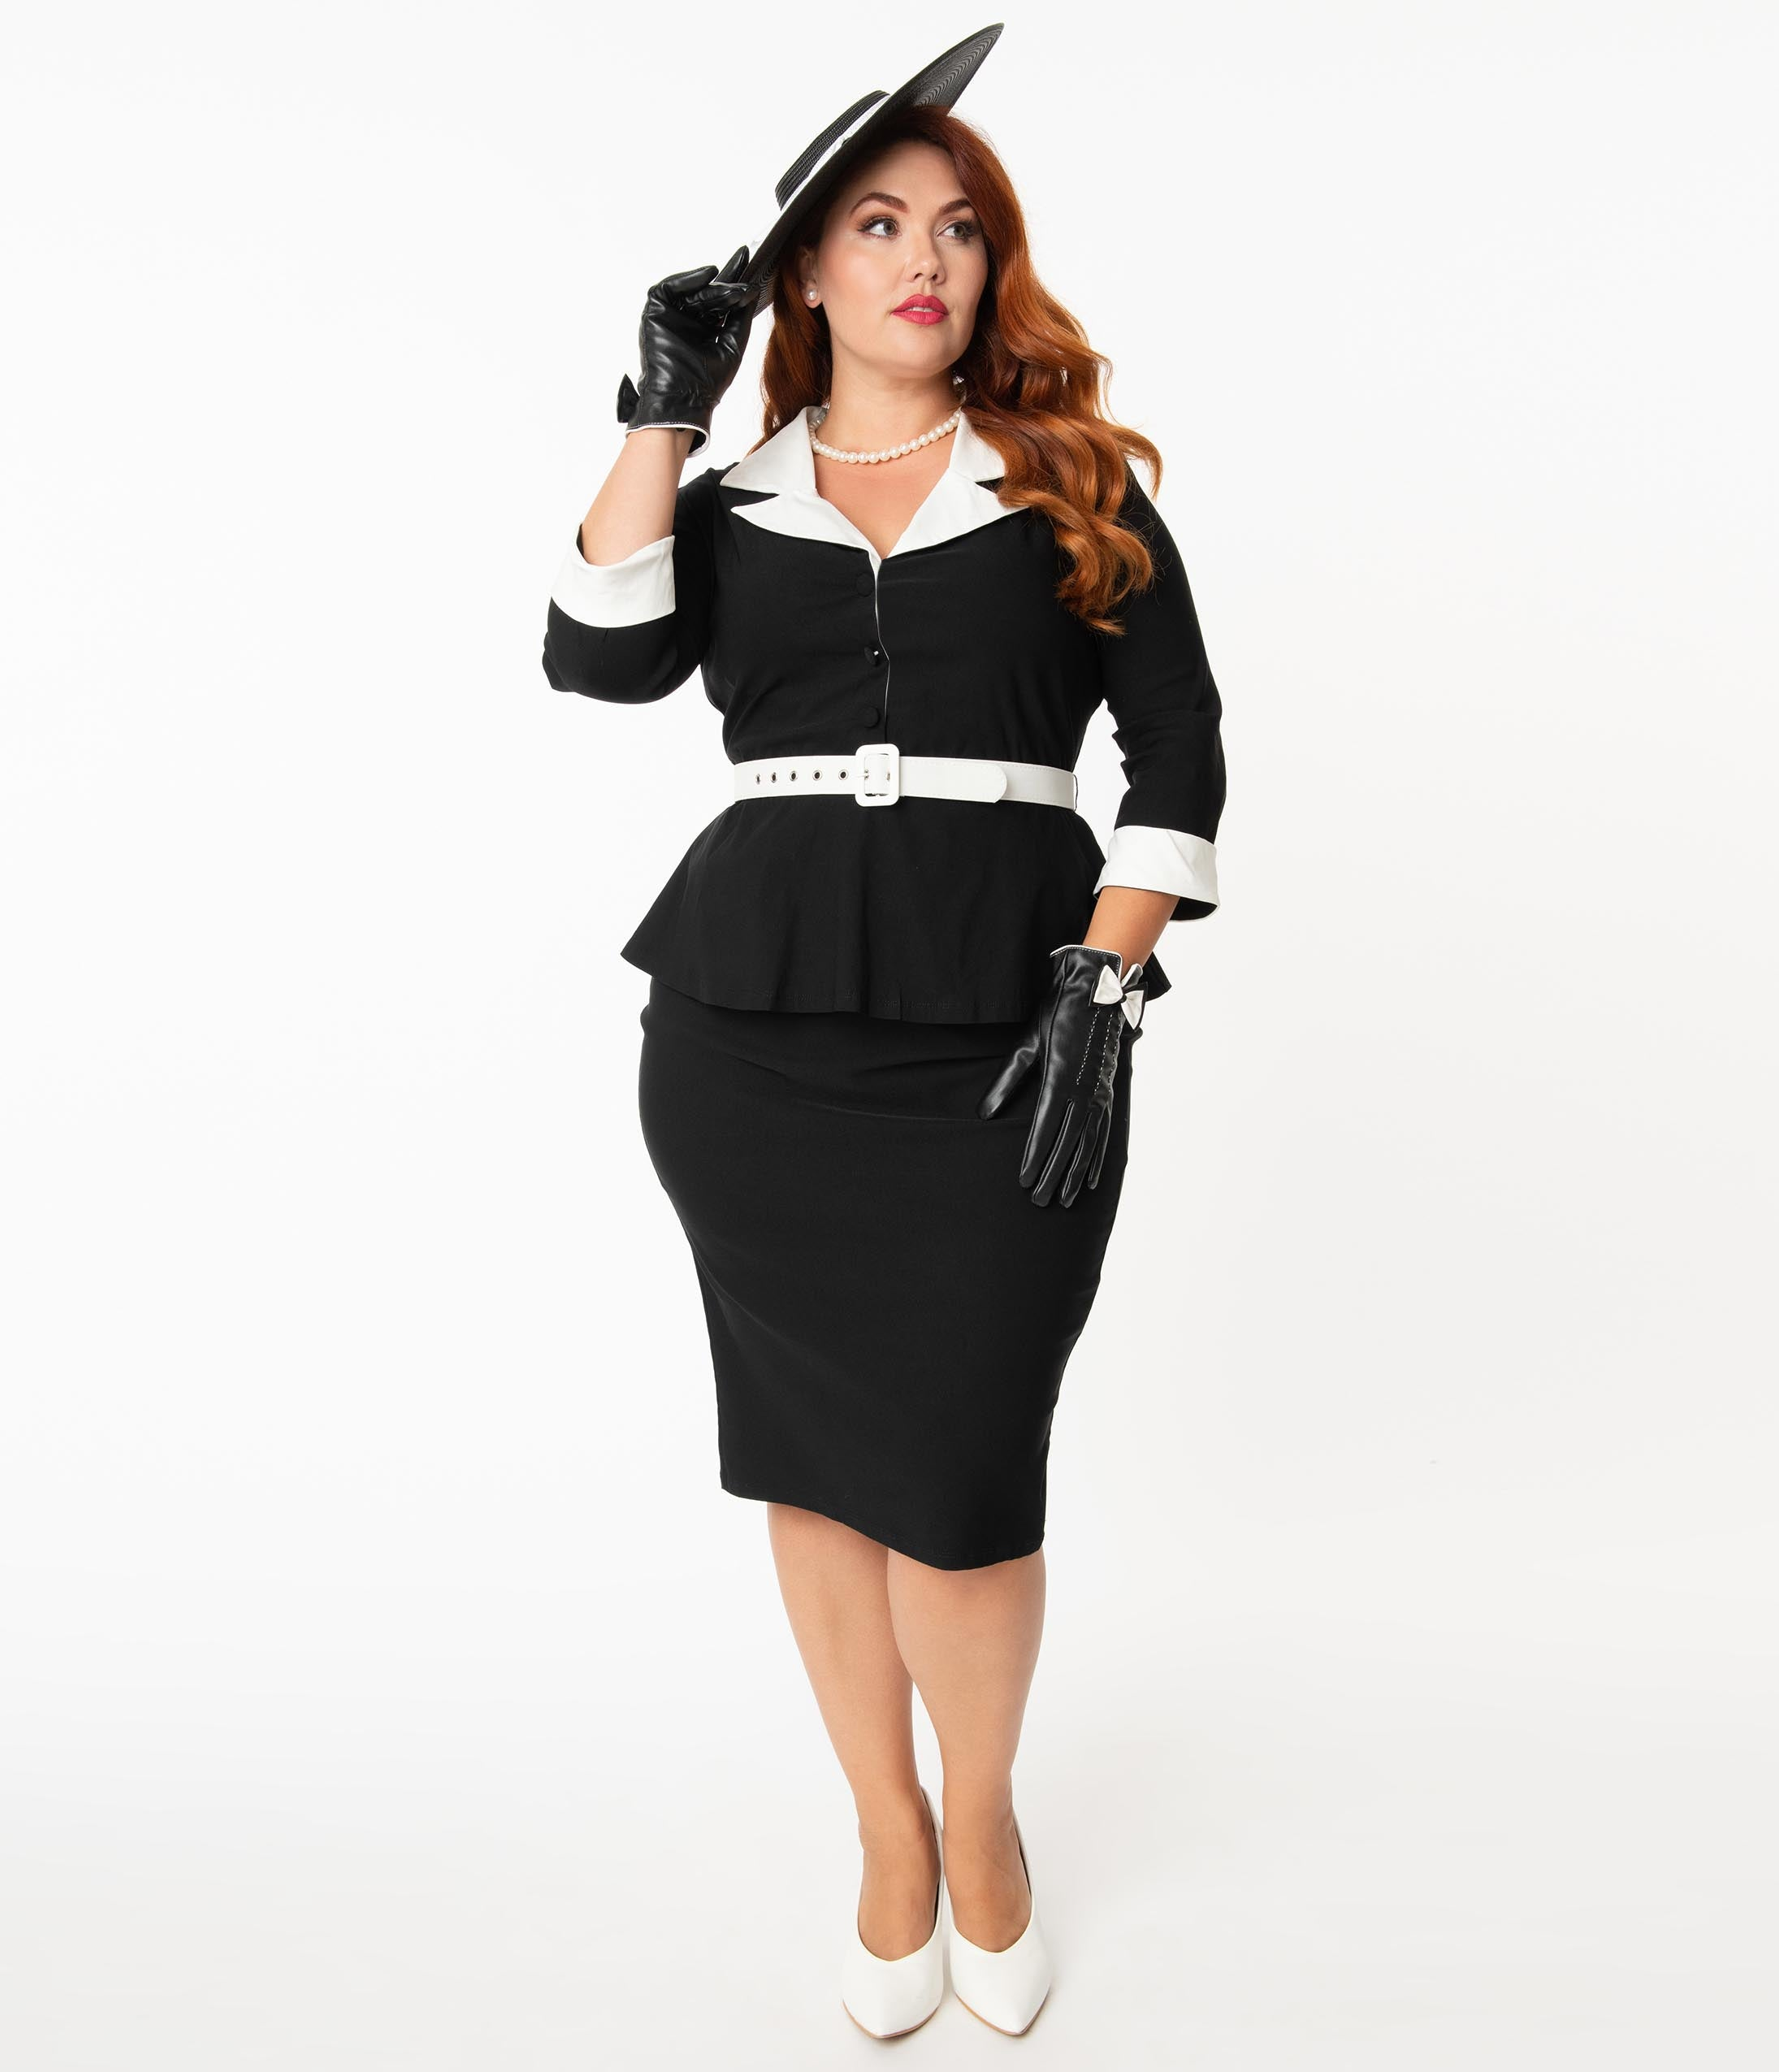 1950s Plus Size Fashion & Clothing History Unique Vintage Plus Size Black  White Peplum Cooper Suit Dress $98.00 AT vintagedancer.com